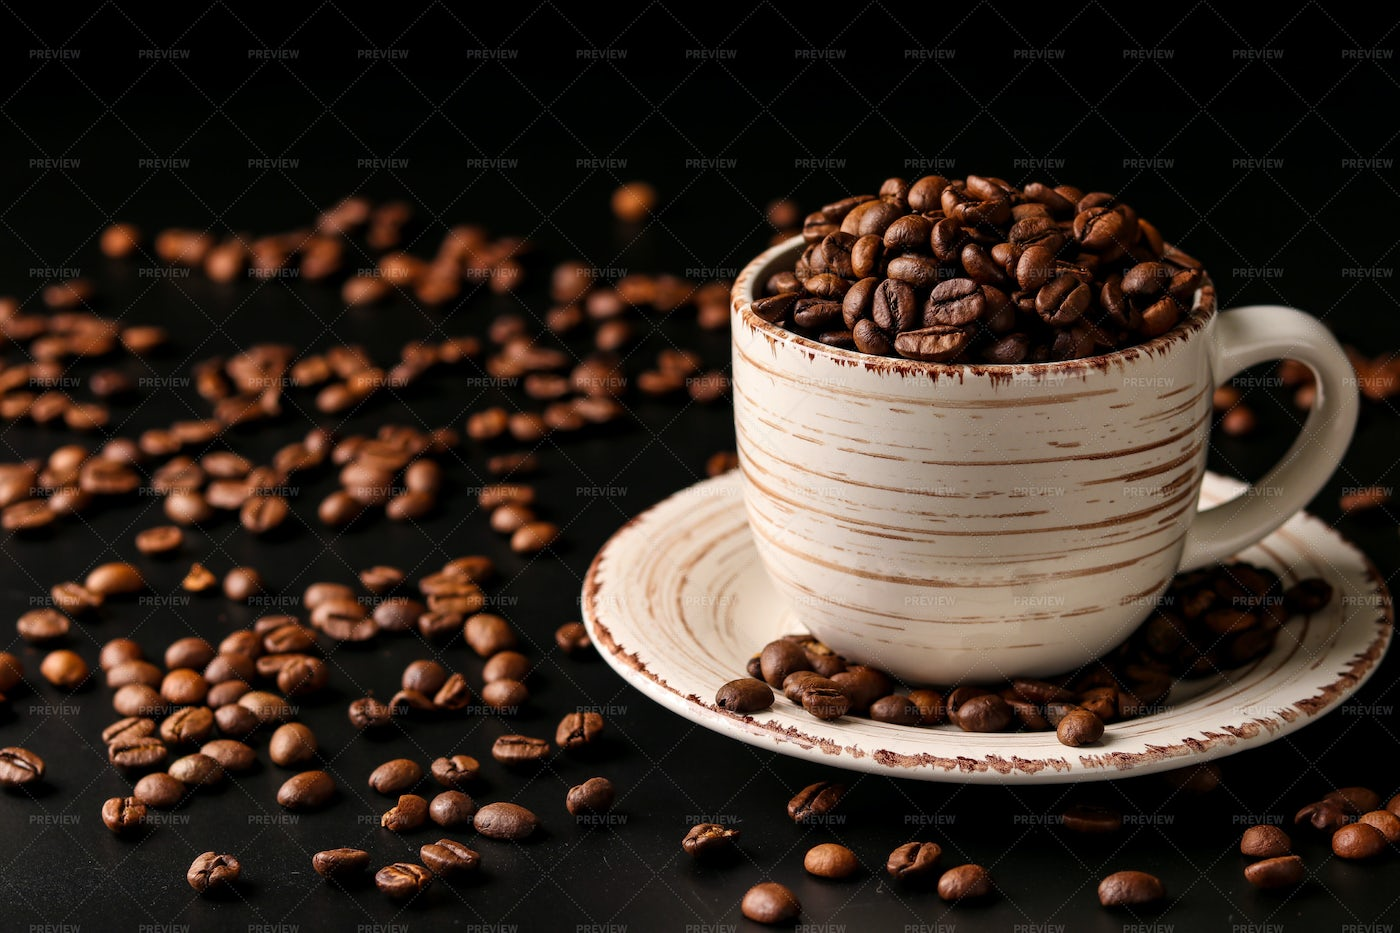 Coffee Beans In Cup: Stock Photos